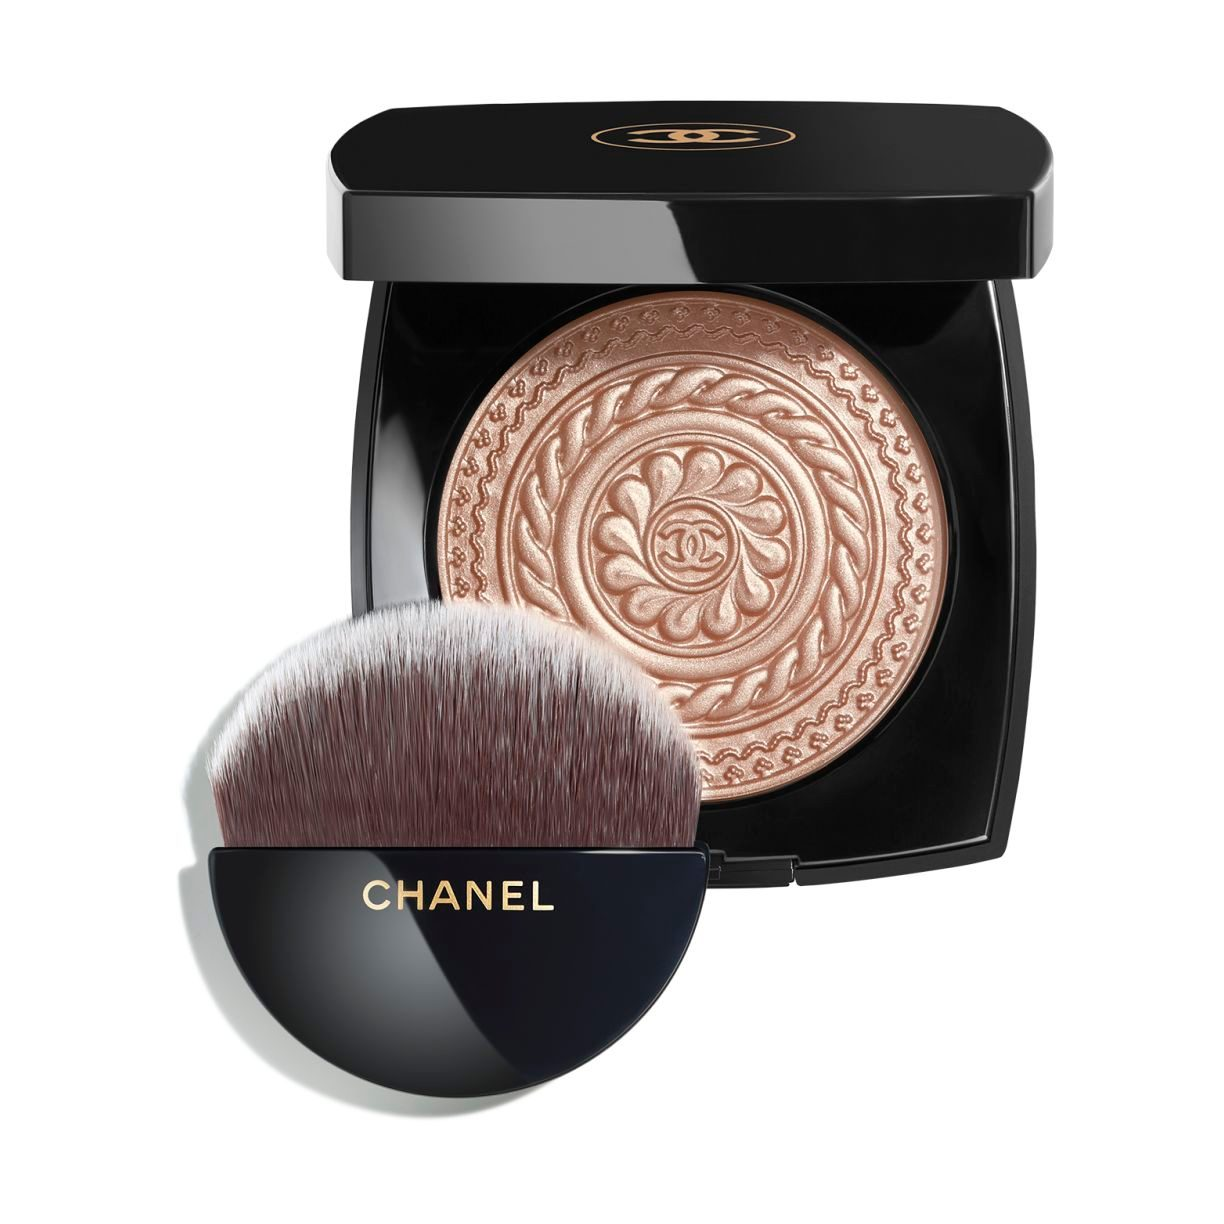 ÉCLAT MAGNÉTIQUE DE CHANEL EXCLUSIEVE CREATIE – LIMITED EDITION HIGHLIGHTER METAL PEACH